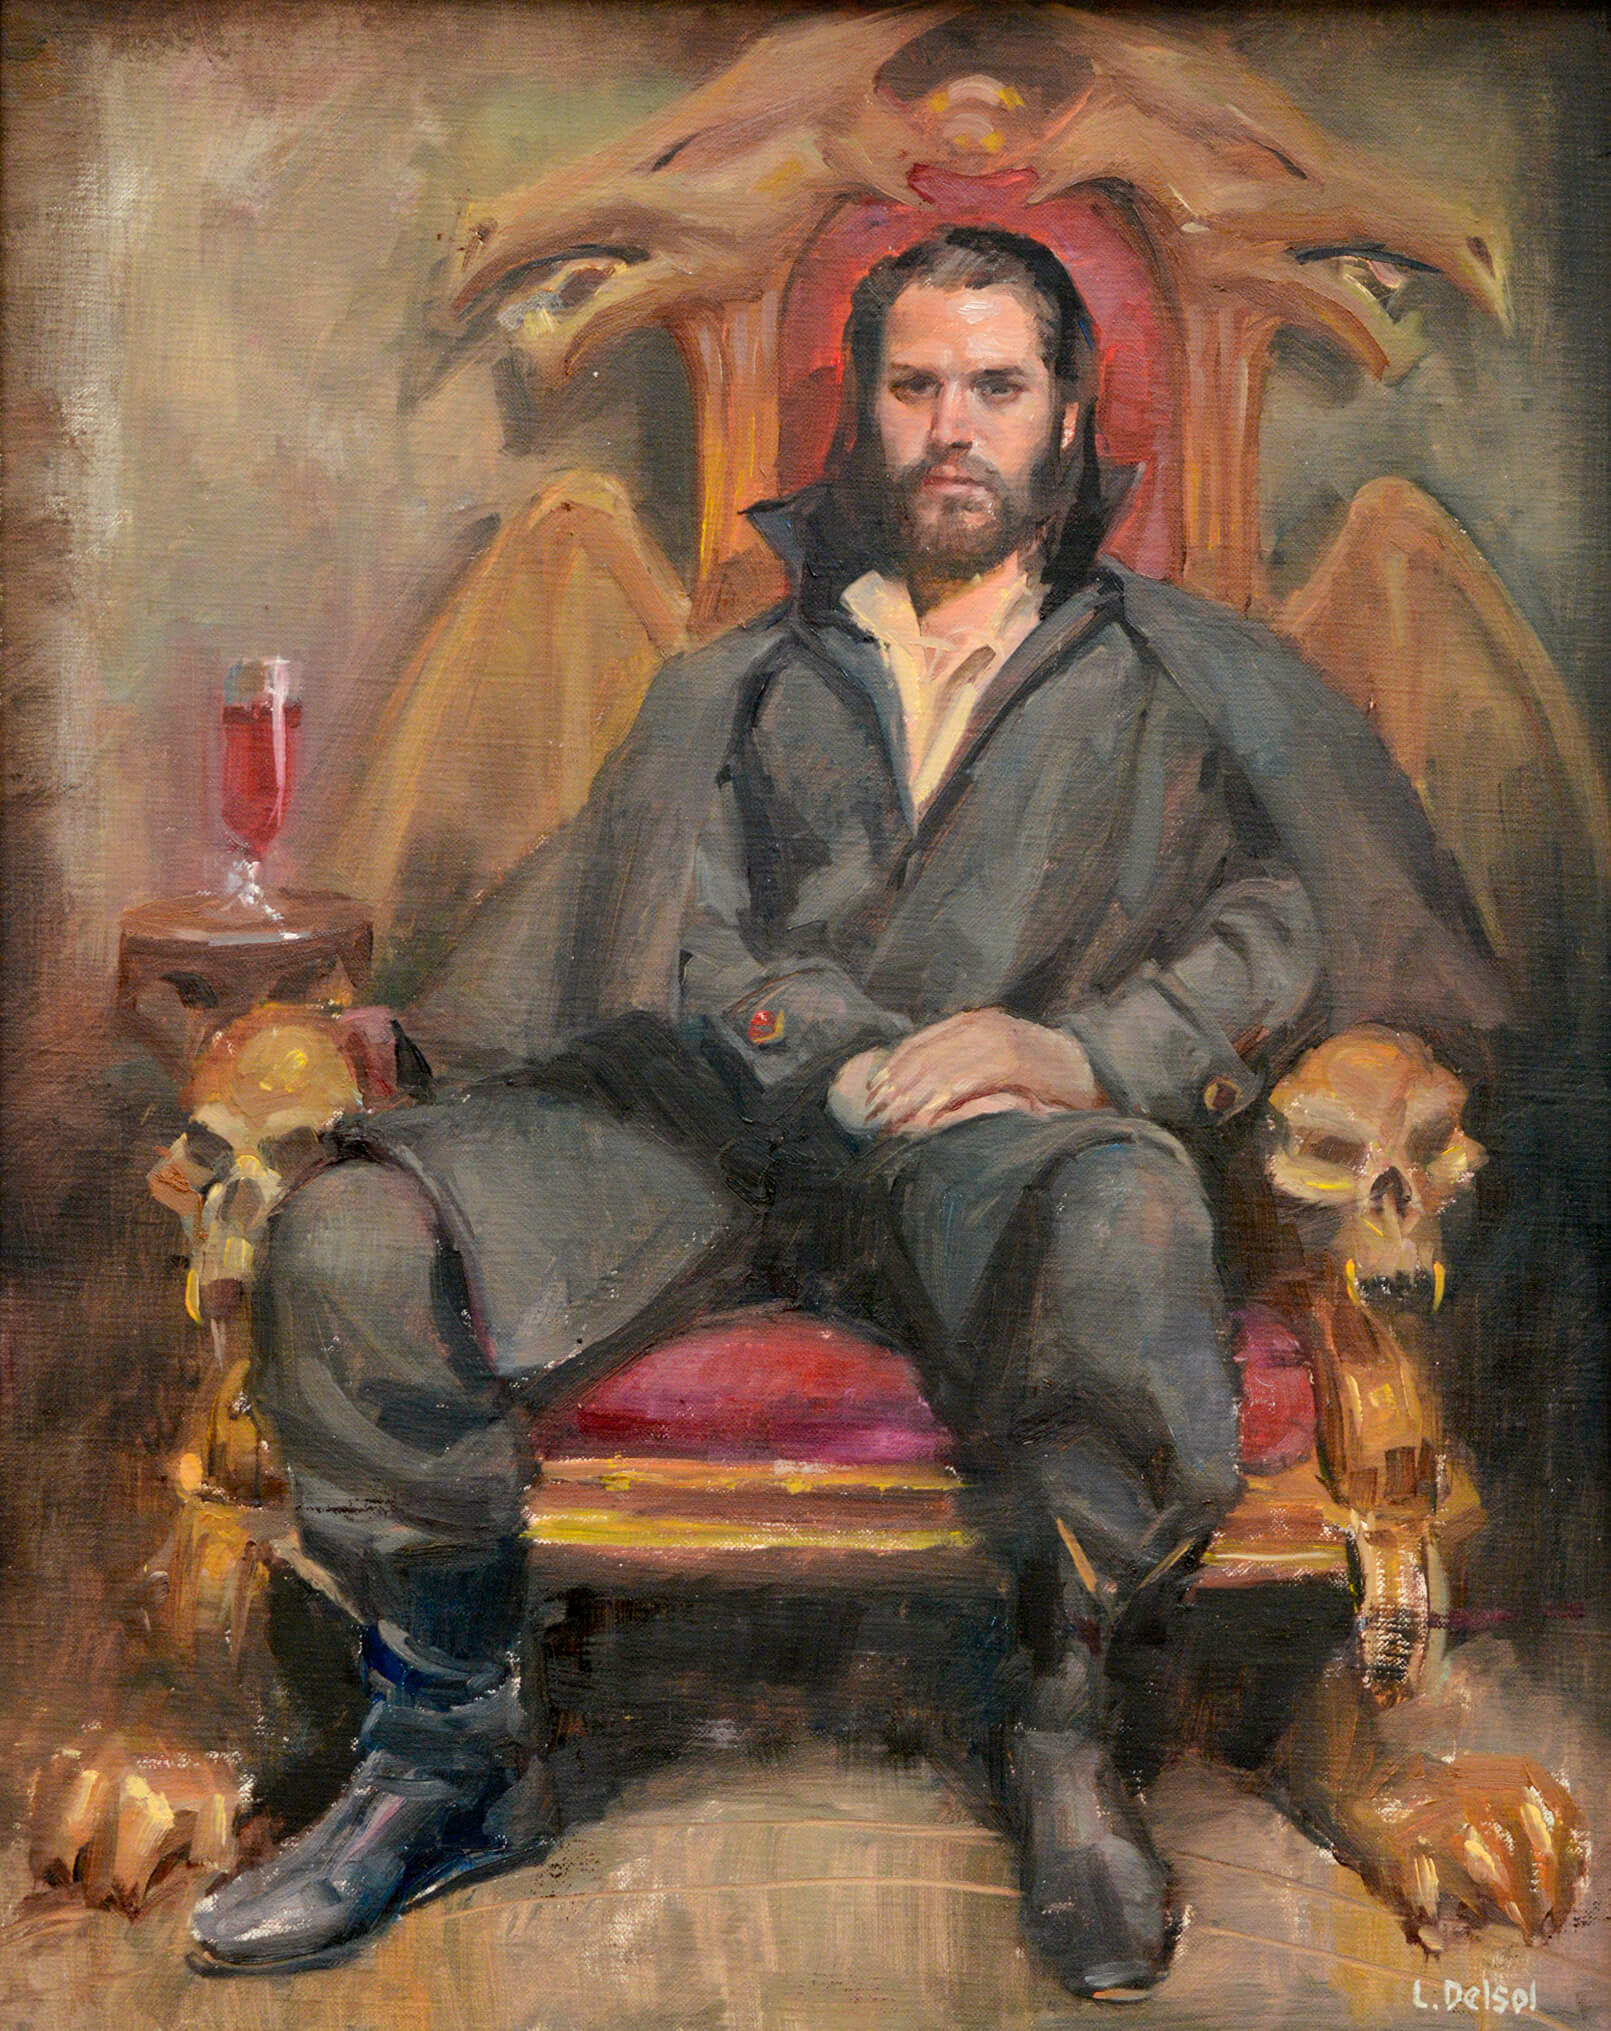 Realistic fantasy portrait of a dark haired bearded man in an ornate count Dracula inspired throne